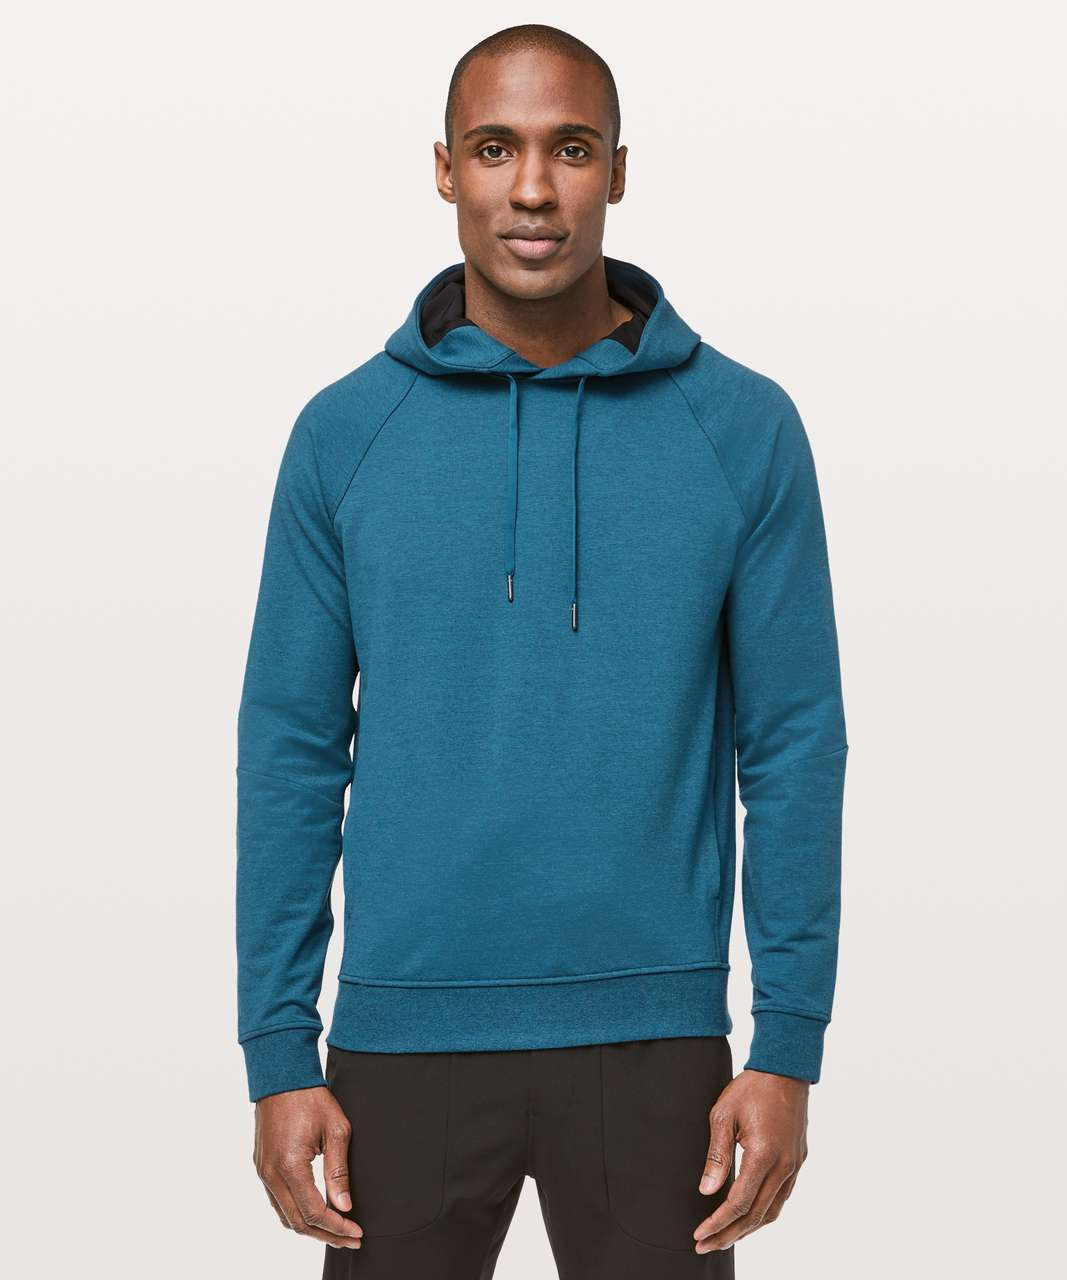 Lululemon City Sweat Pullover Hoodie - Heathered Poseidon